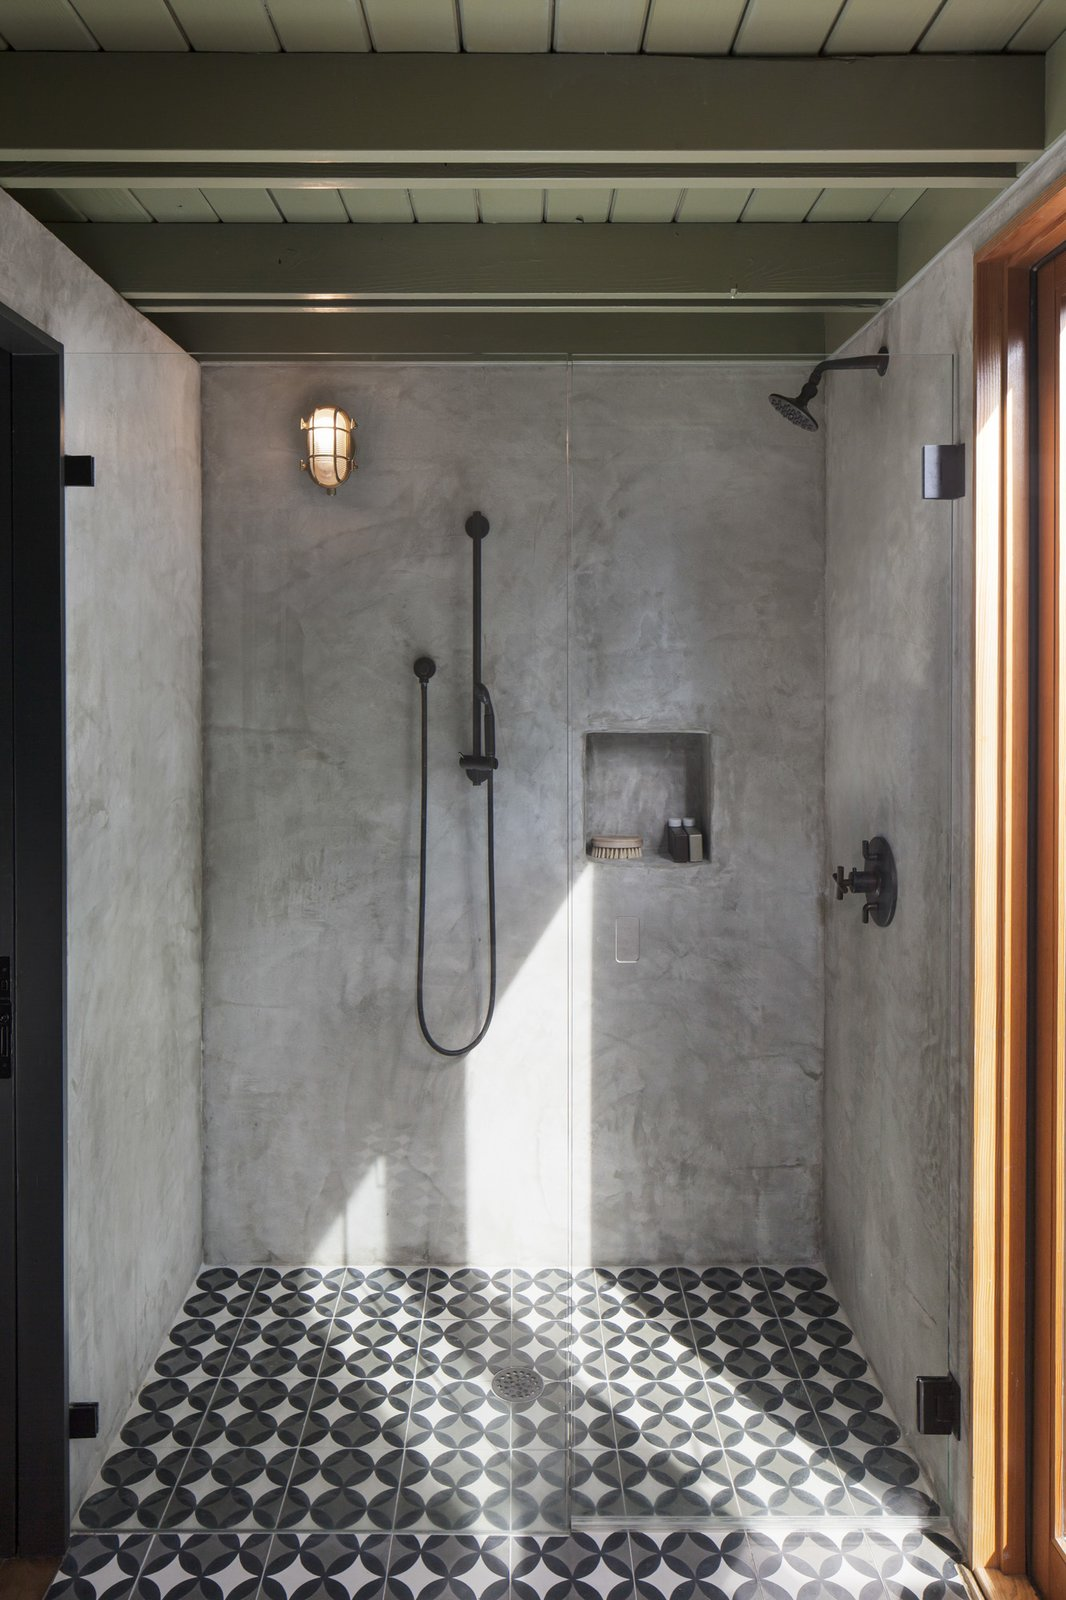 Bath Room, Cement Tile Floor, Wall Lighting, Full Shower, and Enclosed Shower The concrete tile transitions into the plaster shower for a seamless look.  Bathe